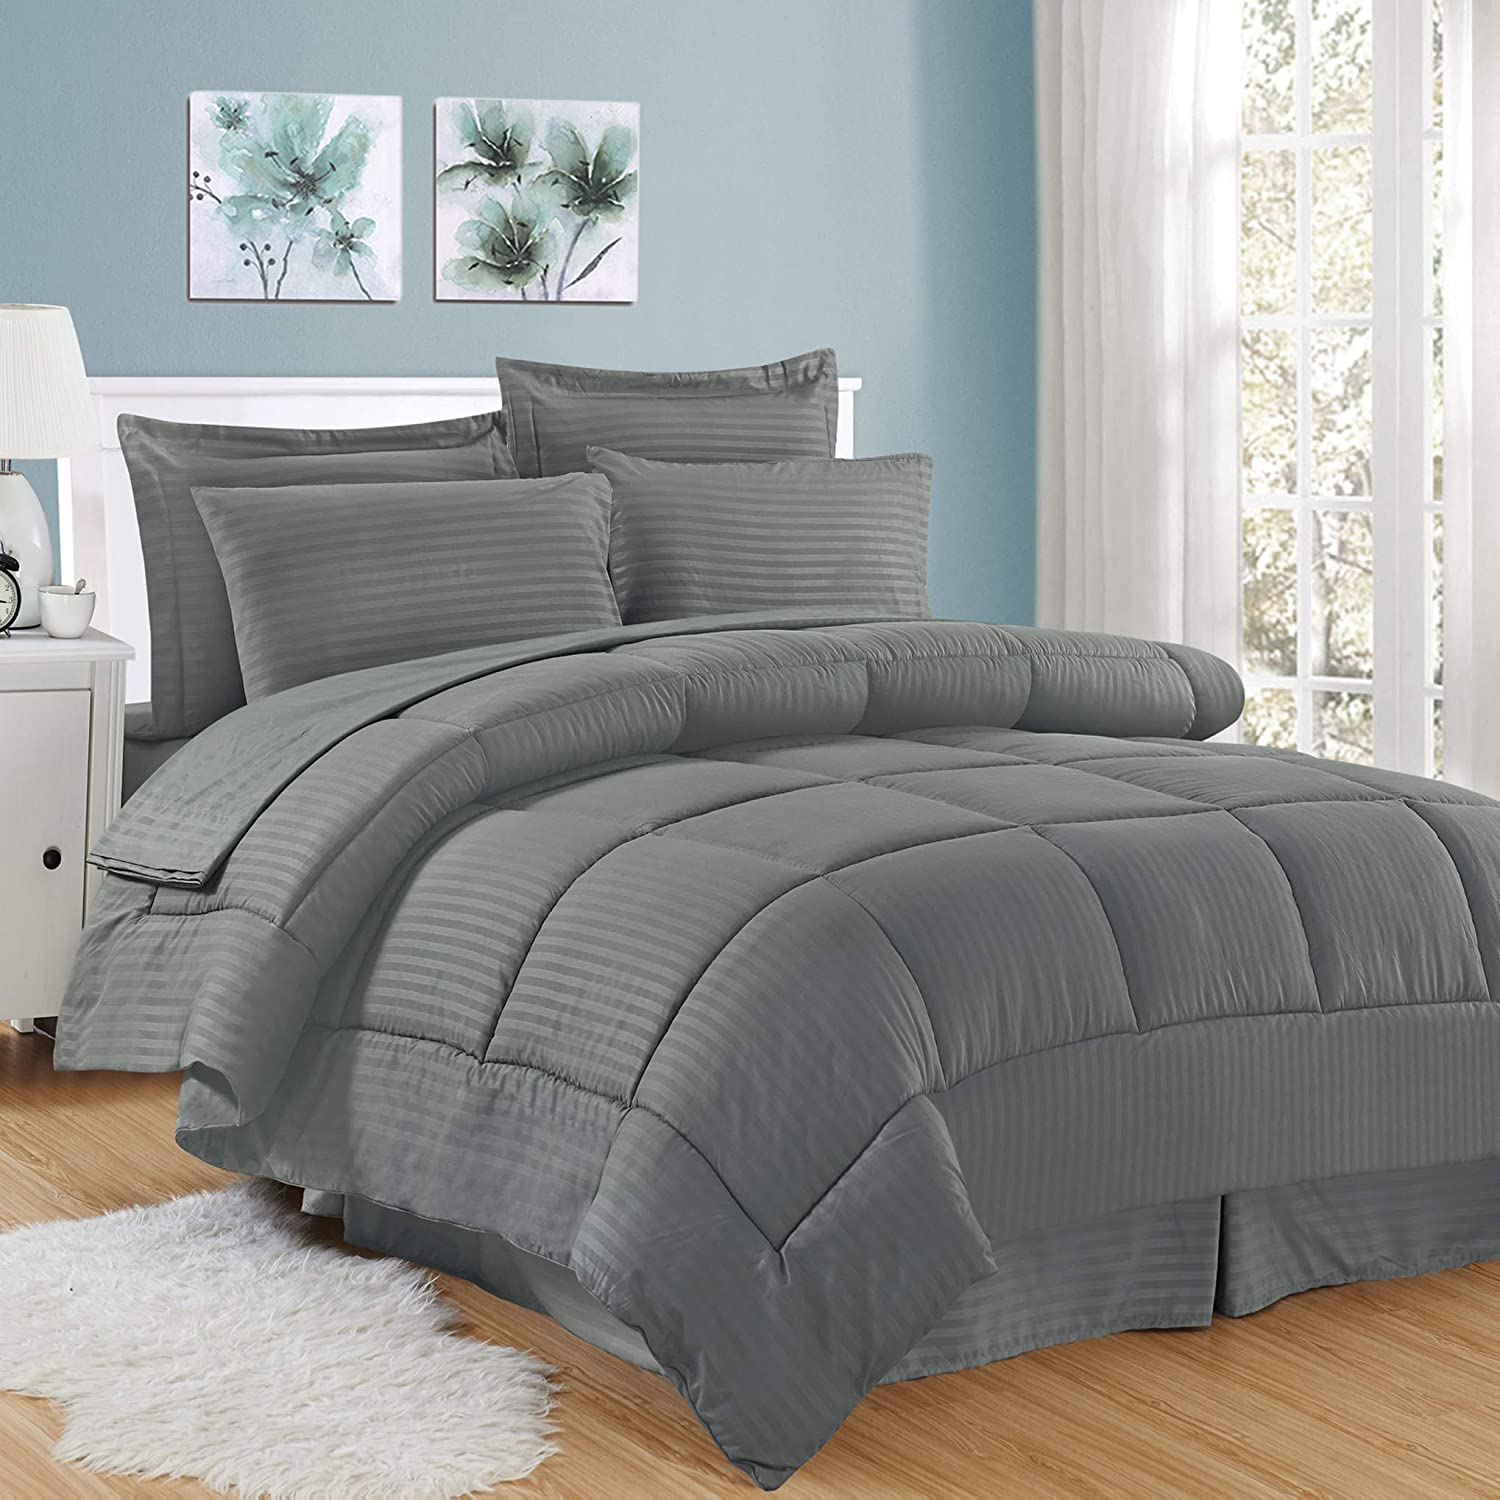 Sweet Home Collection 8 Piece Bed In A Bag with Dobby Stripe Comforter, Sheet Set, Bed Skirt, and Sham Set - King - Gray